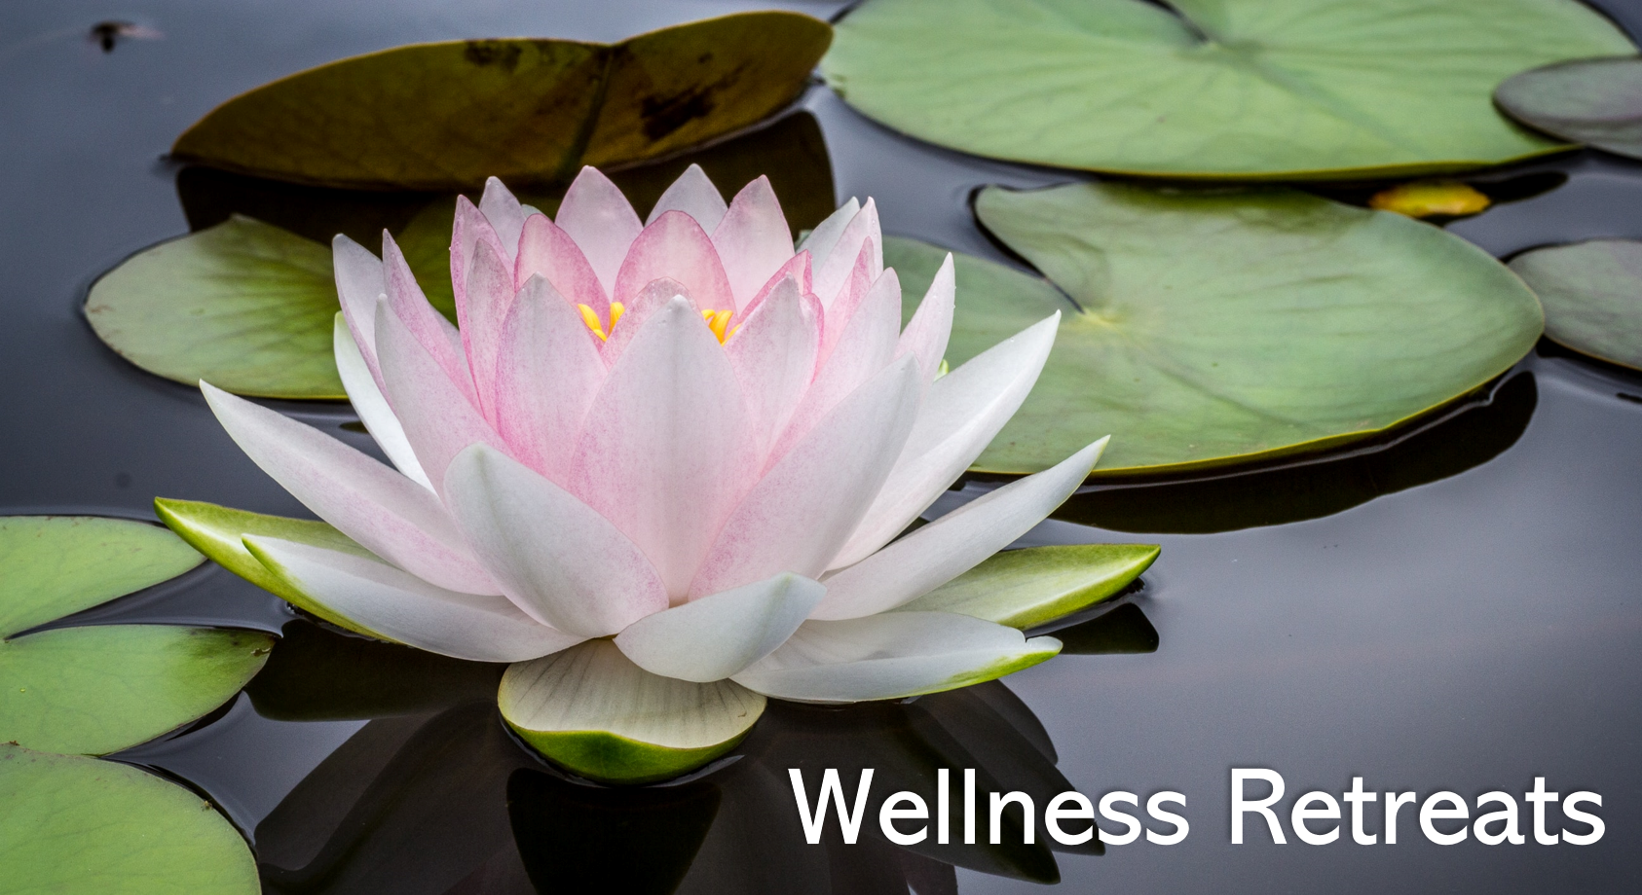 Wellness Retreats with Lani Visconti